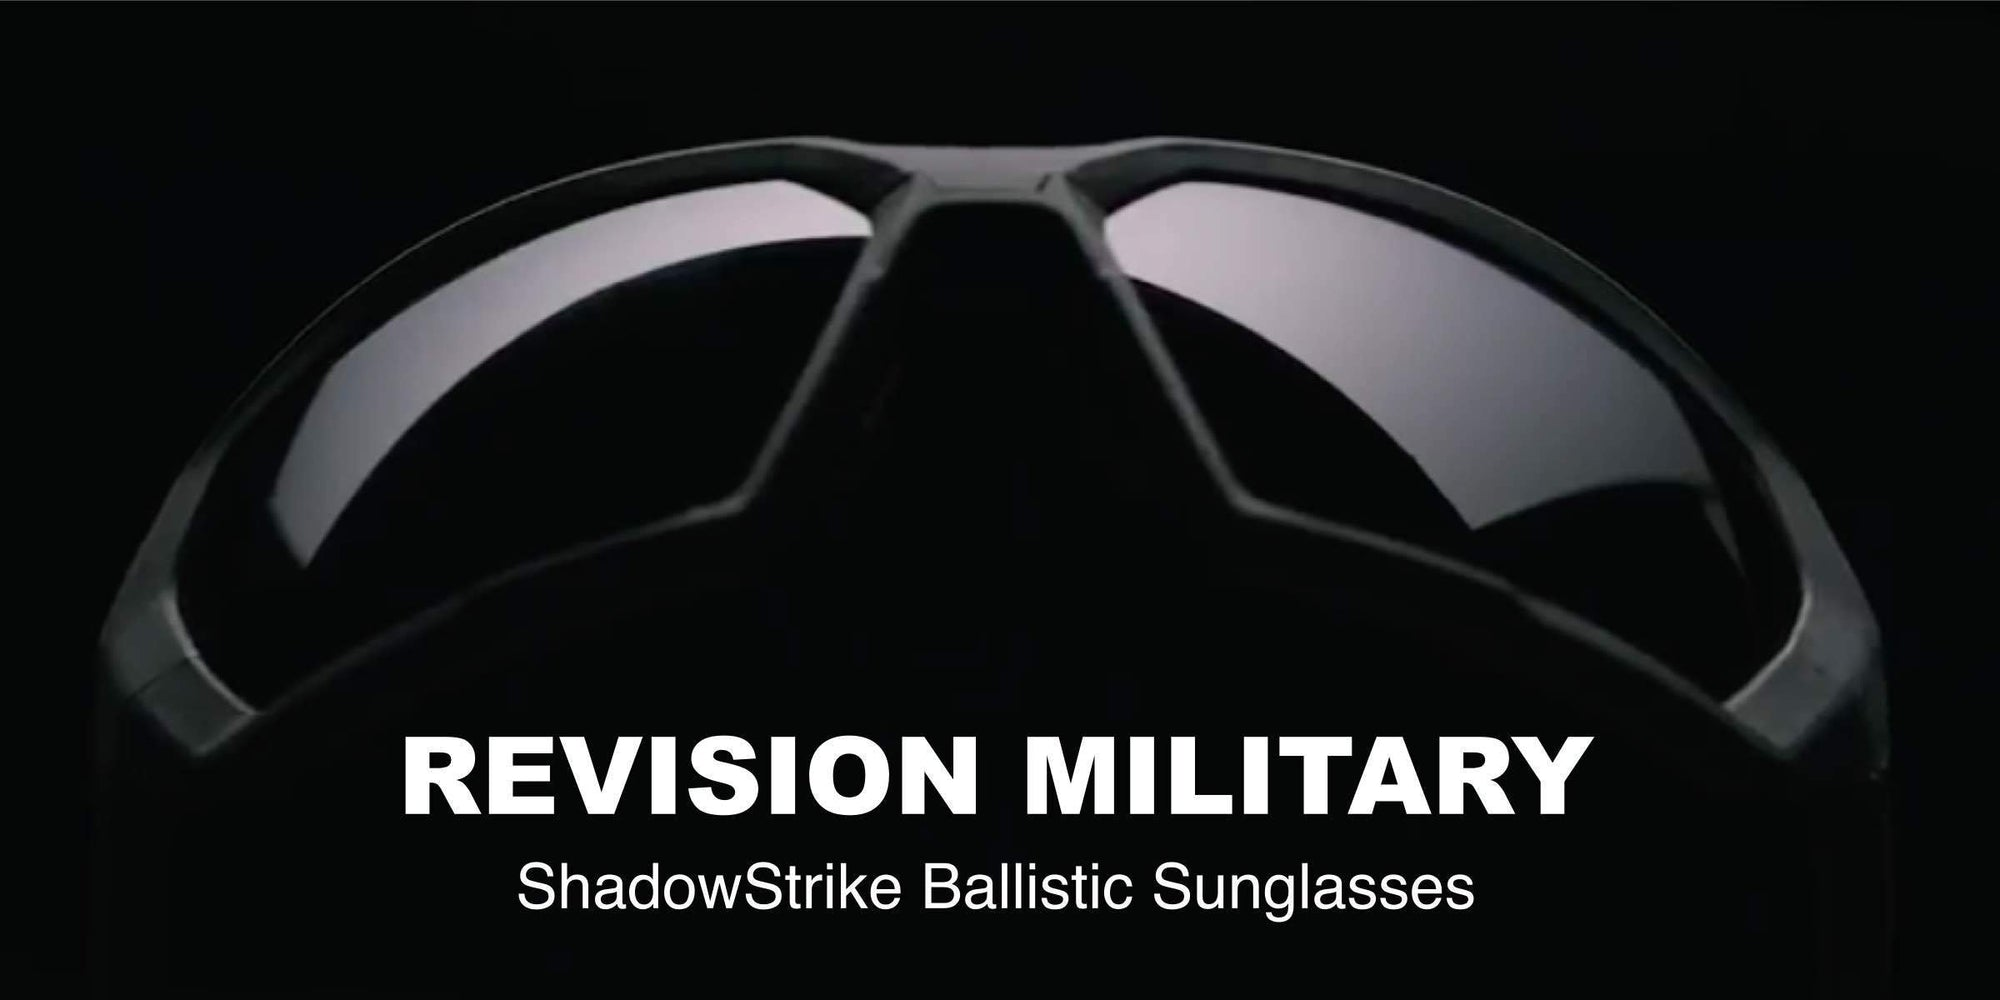 The Briefing Room - Tactical Gear Blog Product Spotlight - Revision Shadowstrike Ballistic Sunglasses Tactical Gear Police Military News Articles Australia